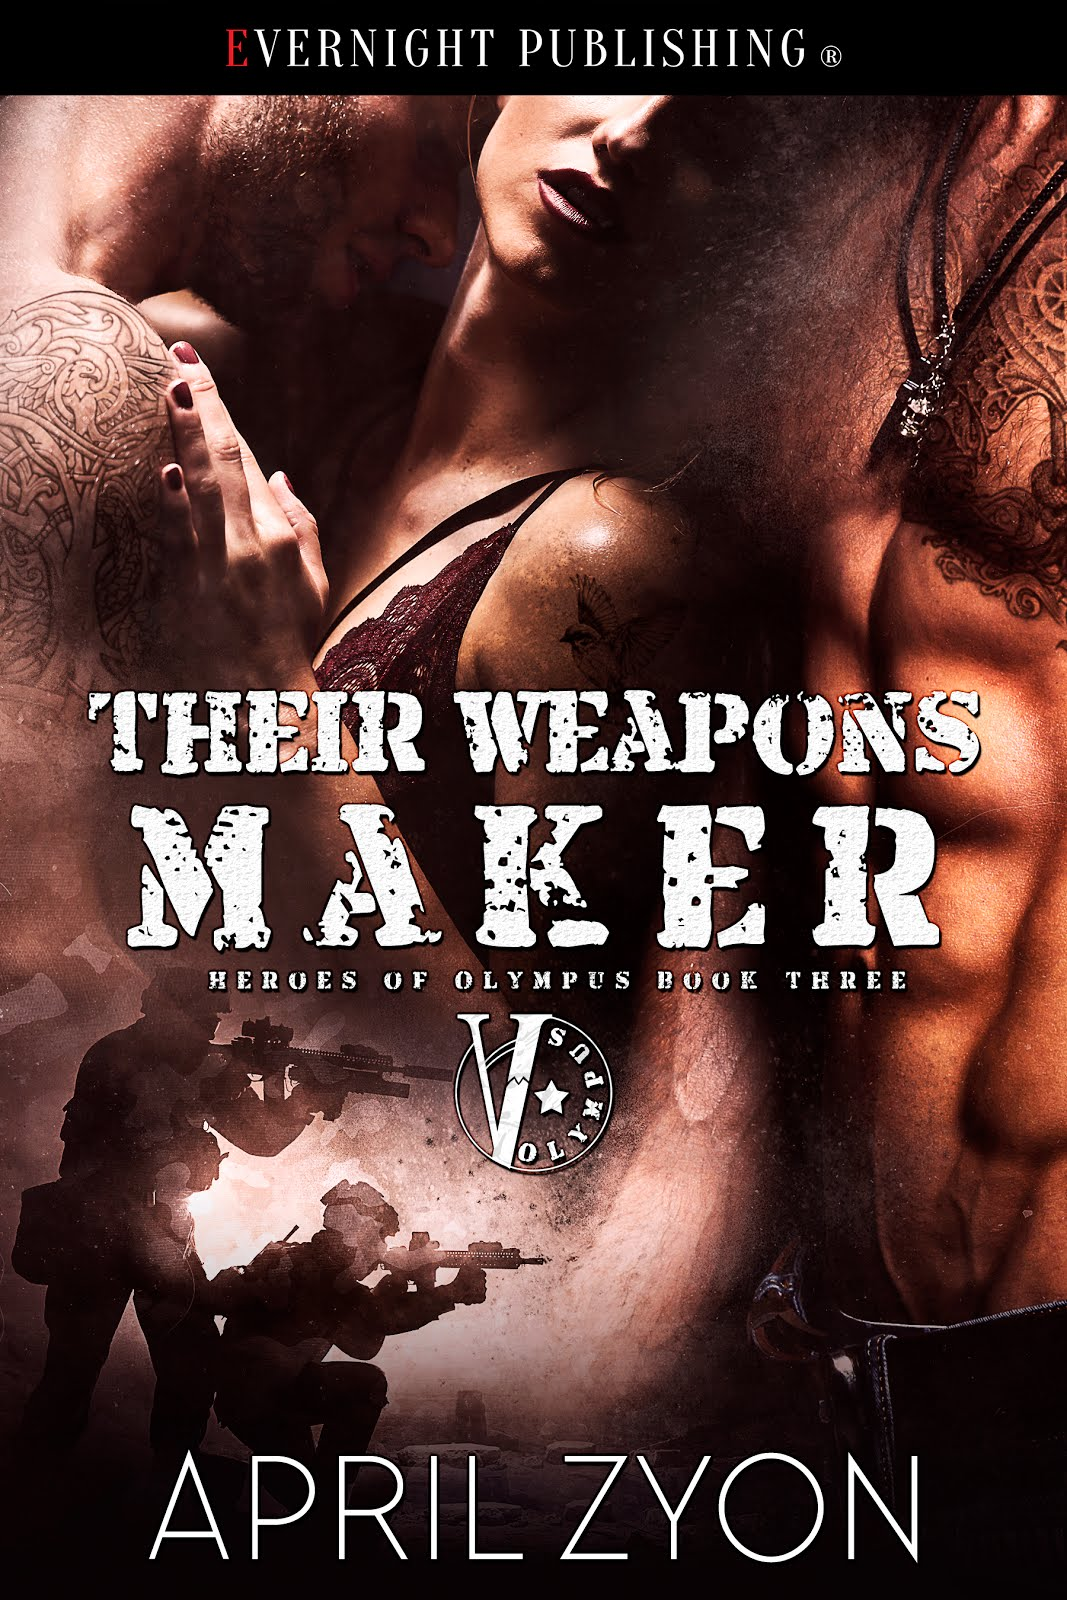 Their Weapons Maker, Heroes of Olympus 3